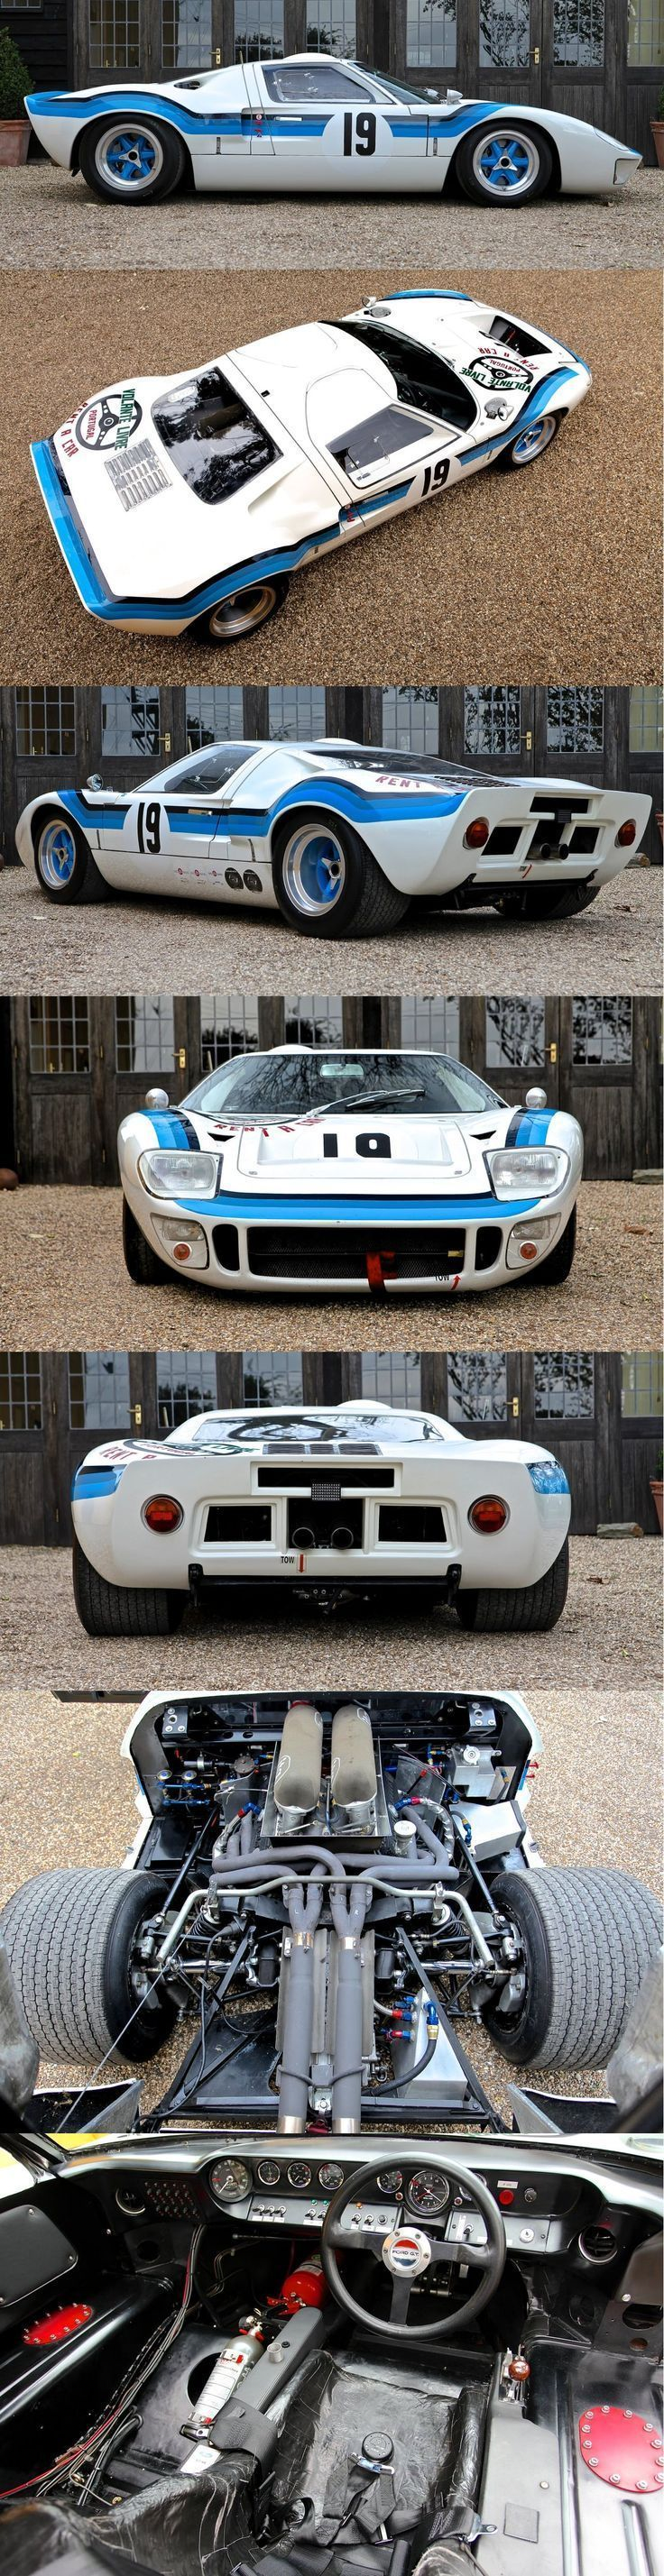 Sports Cars - 1969 Ford GT40 Mk 1...on my dream list top 5 ..maybe top 3...TW Every #Friday it's #RacingFriday at blog.rvinyl.com/... #fordgt